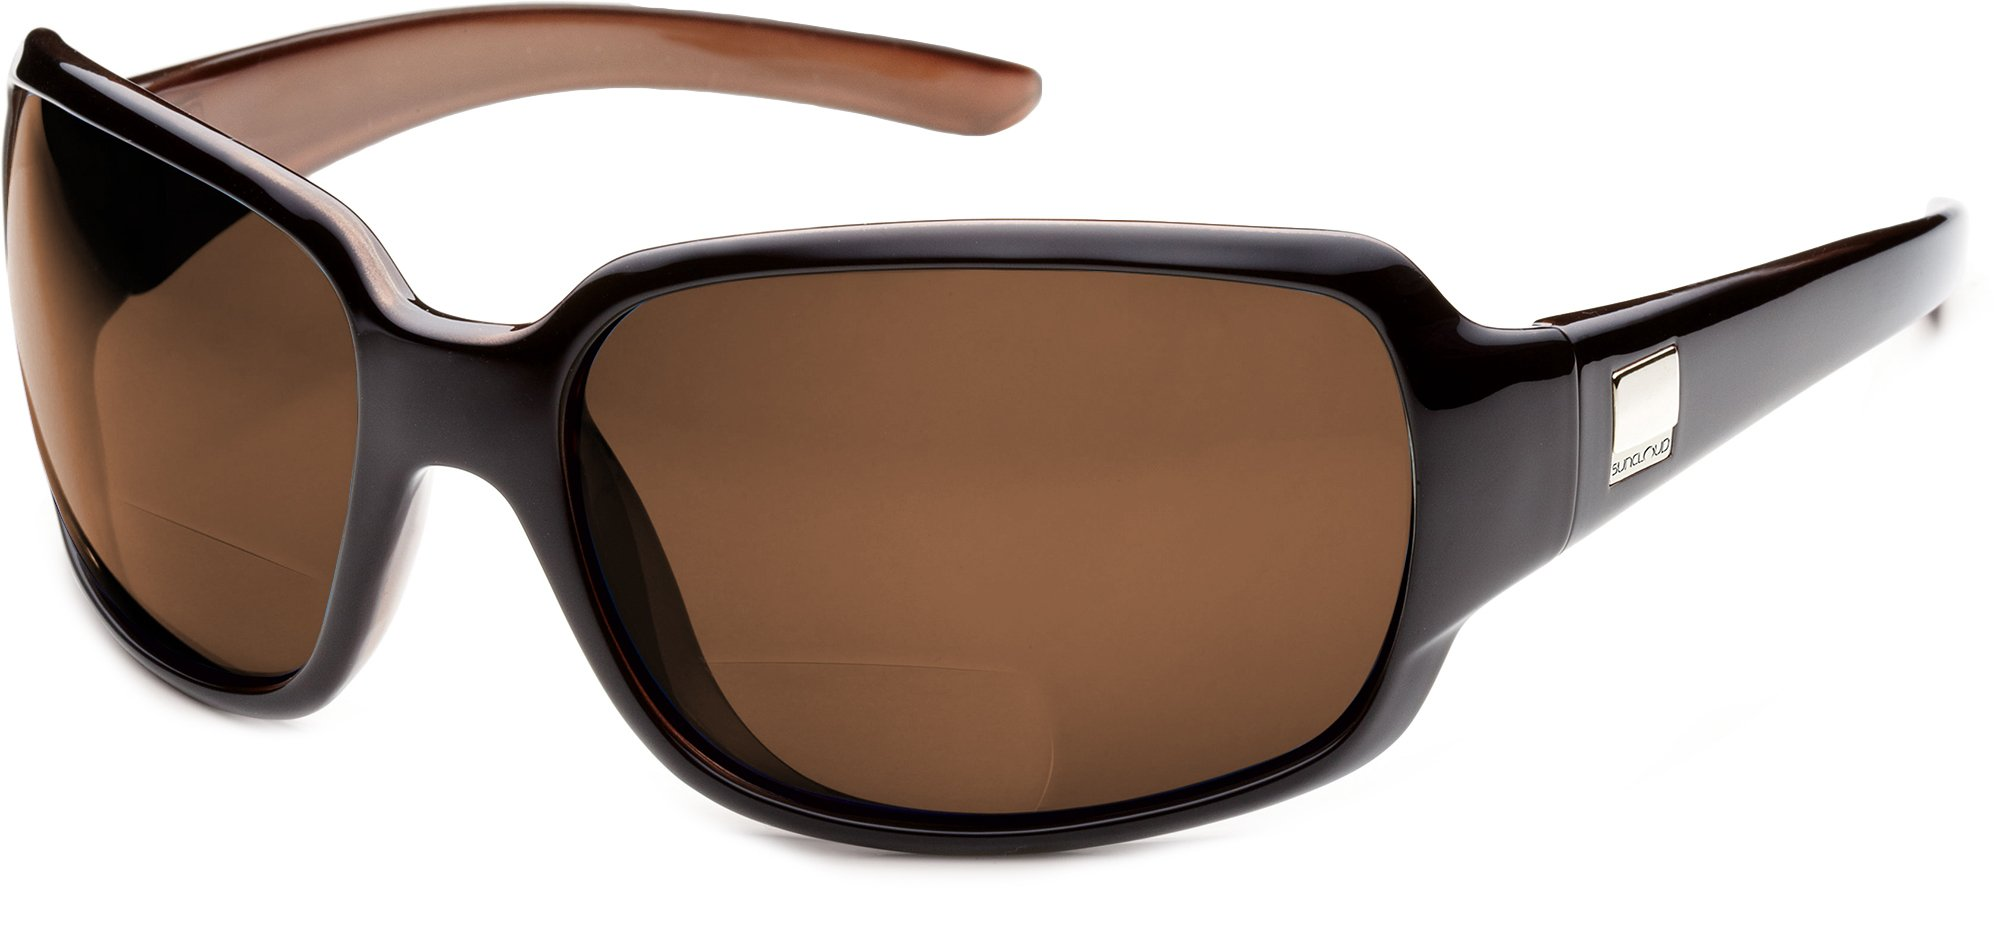 Suncloud Cookie Polarized Bi-Focal Reading Sunglasses in Black Backpaint with Brown Lens +1.75 by Suncloud